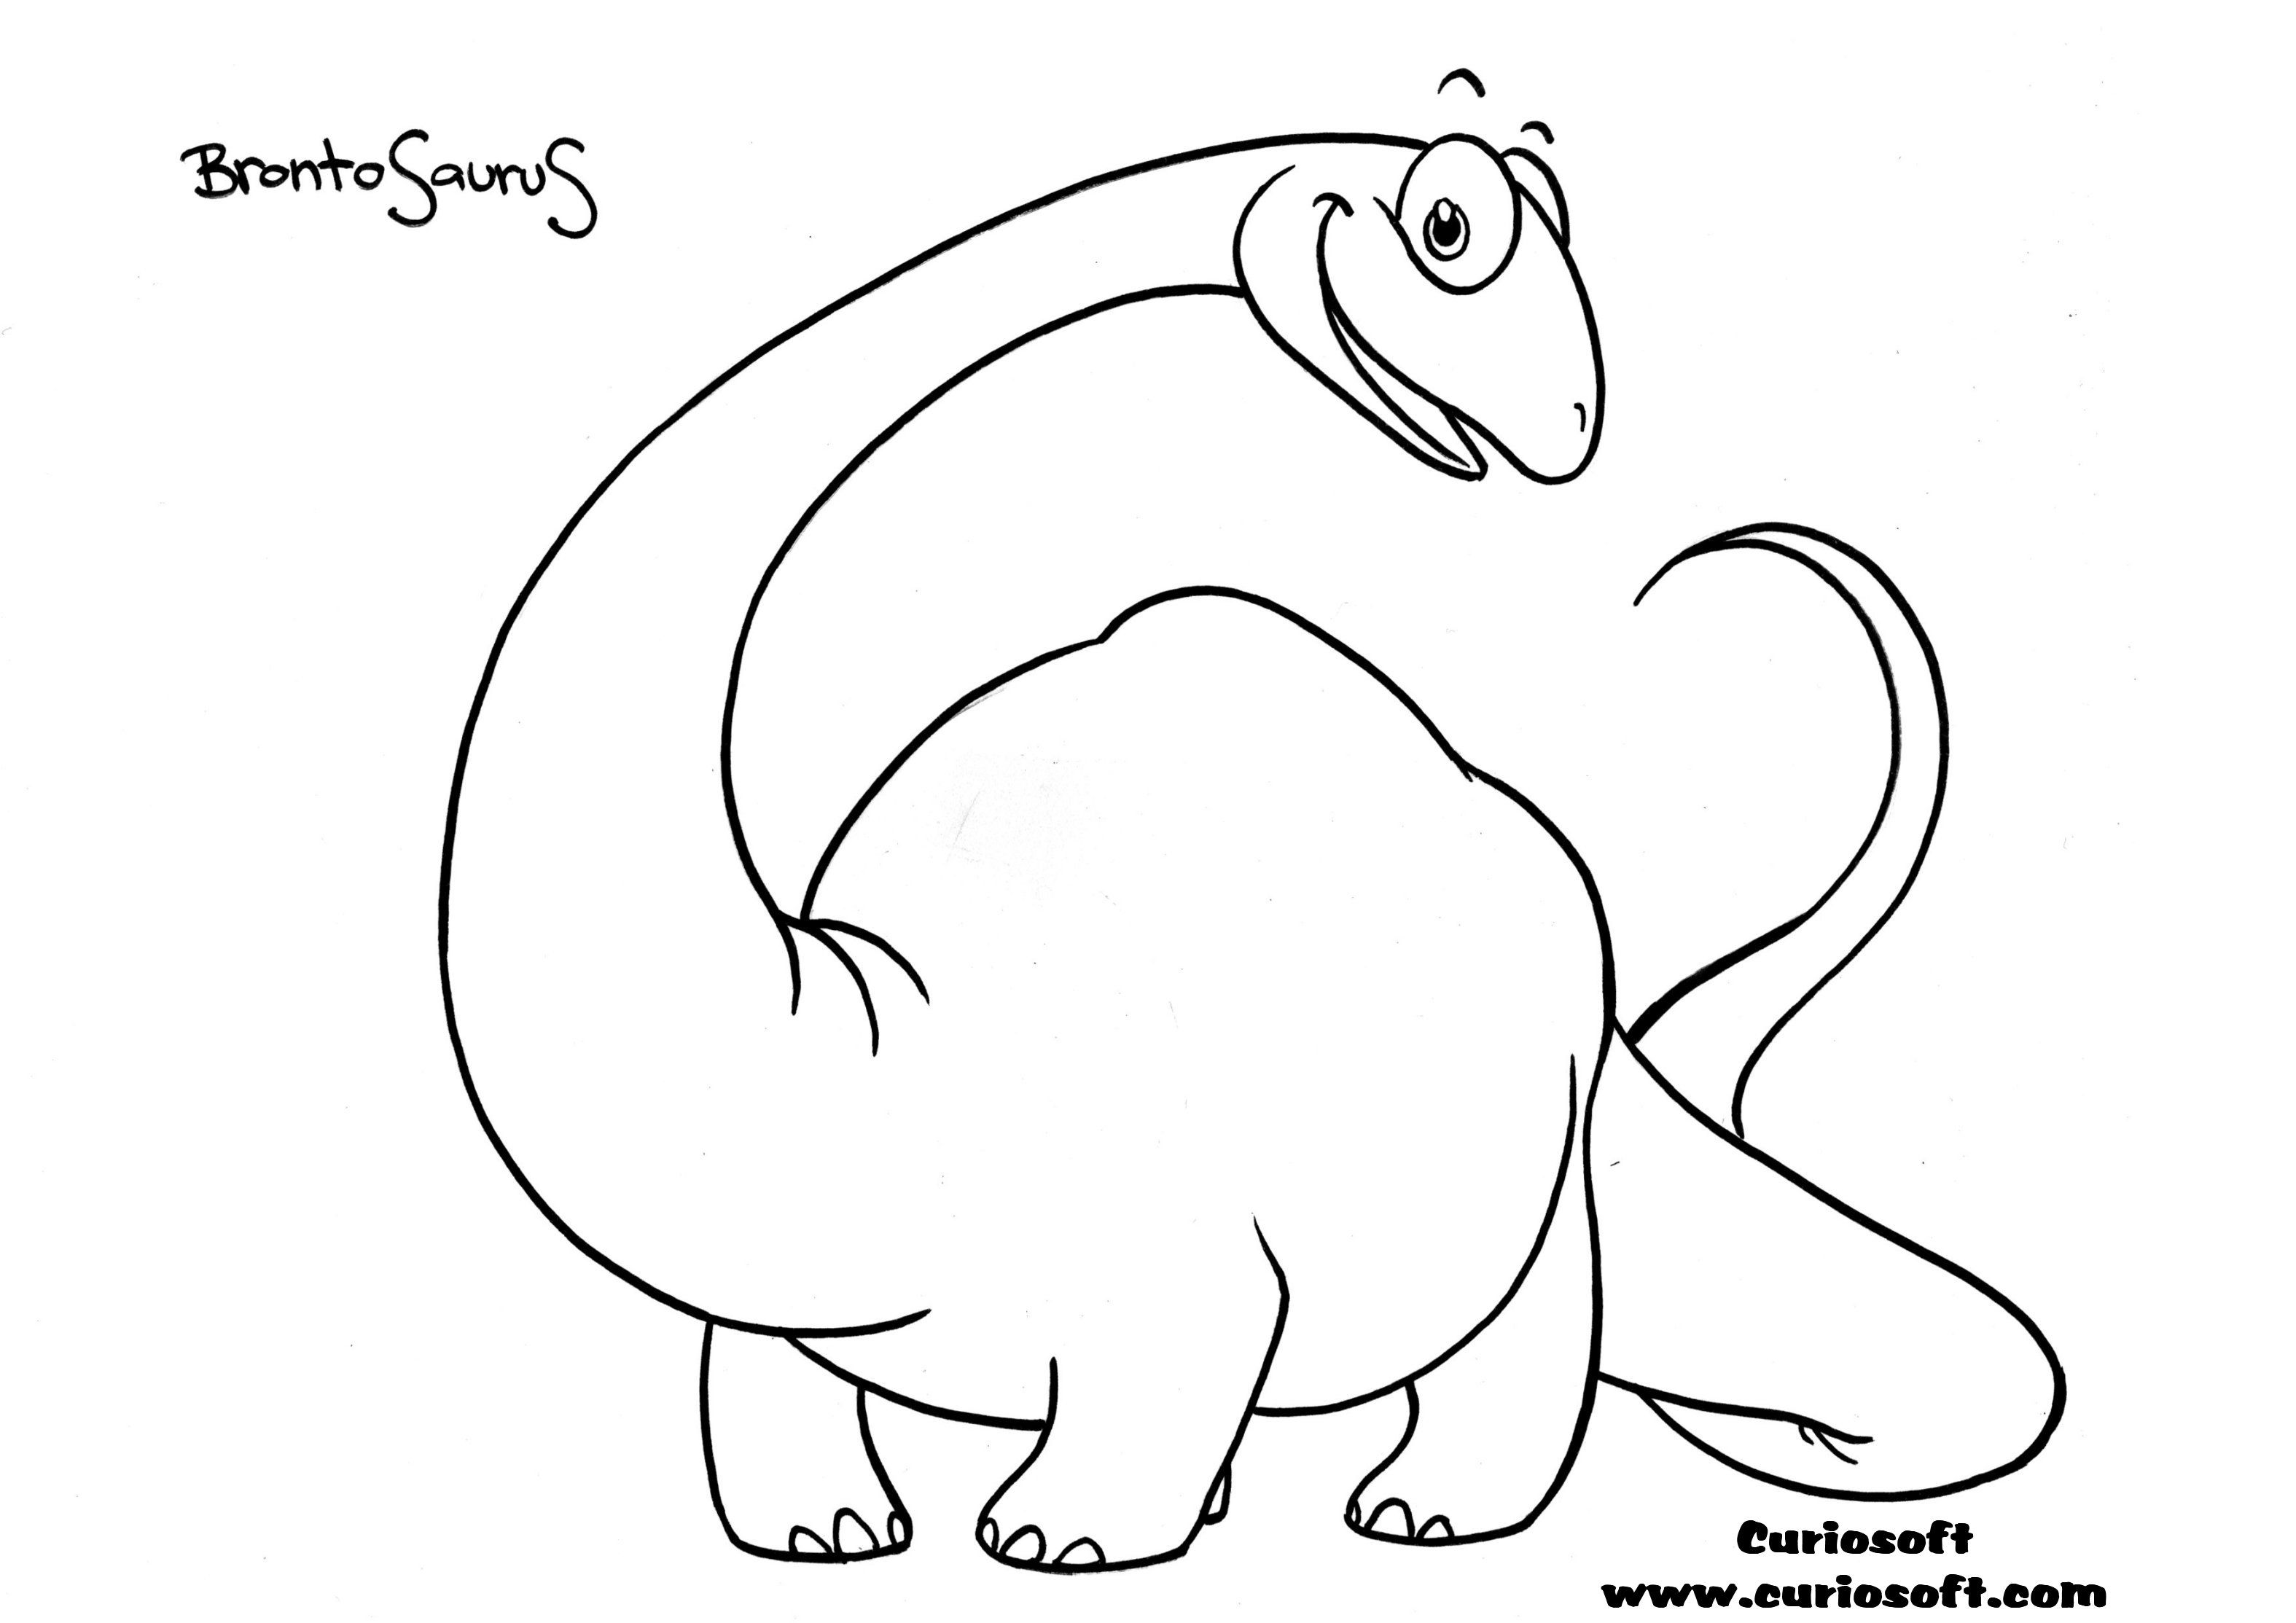 Dinosaur Coloring Pages Cute Illustrations Wit Names